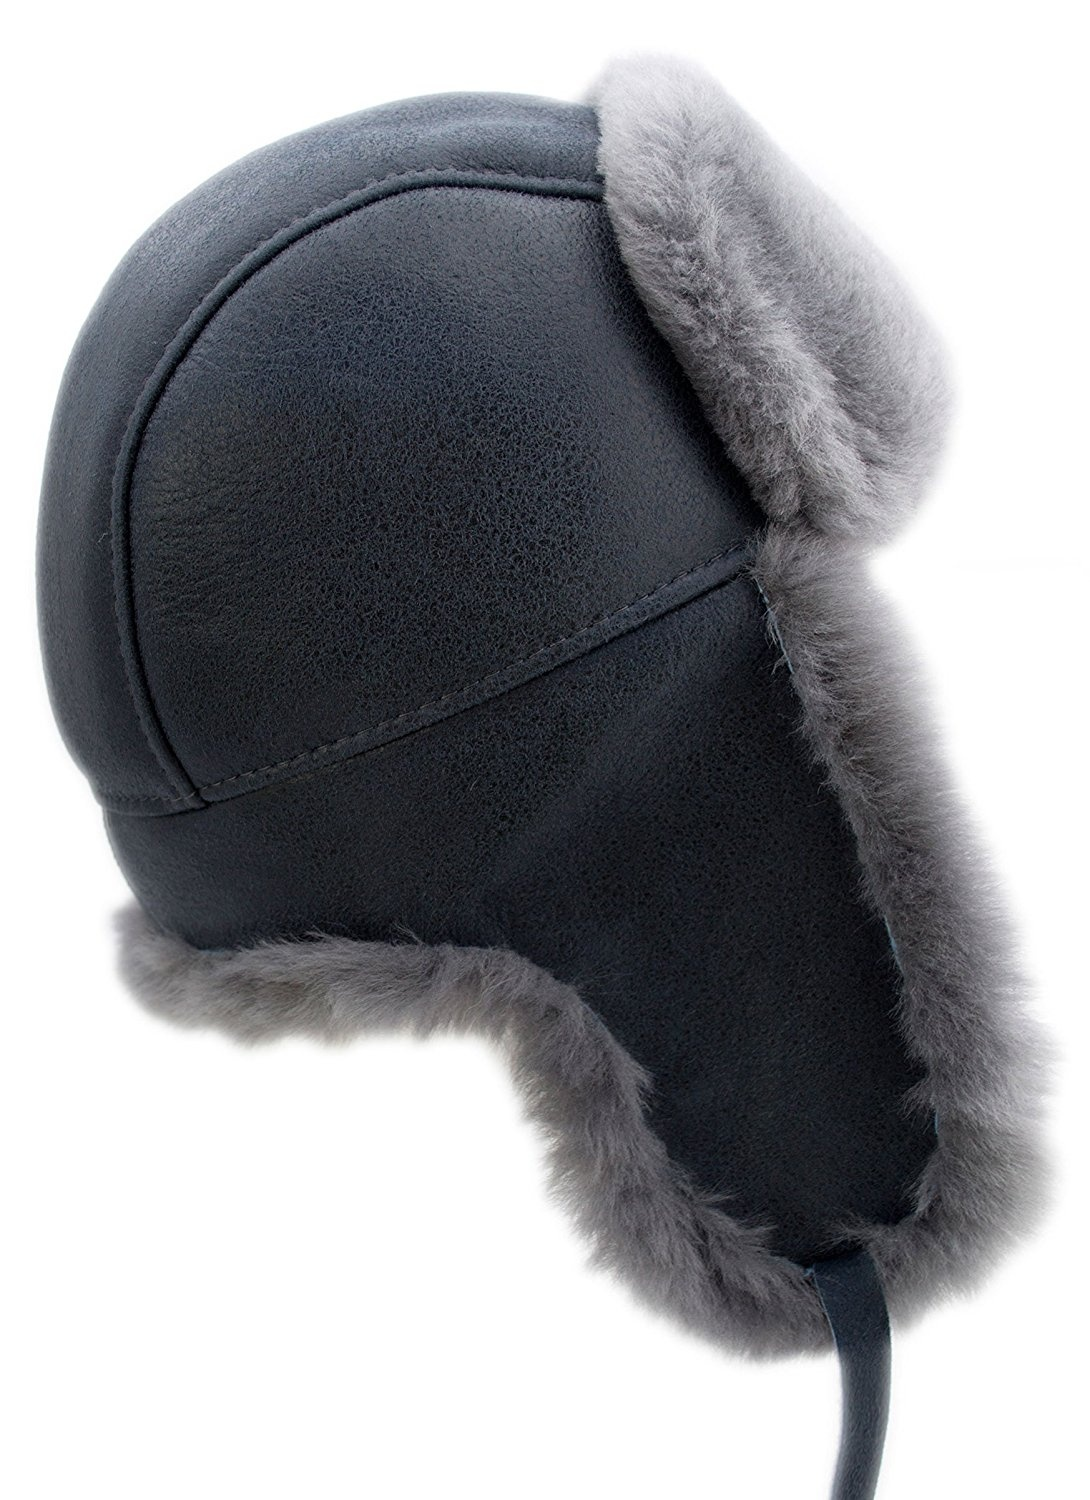 784f33237991d Russian Ushanka Hat Sports   Outdoors  Buy Online from Fishpond.co.nz